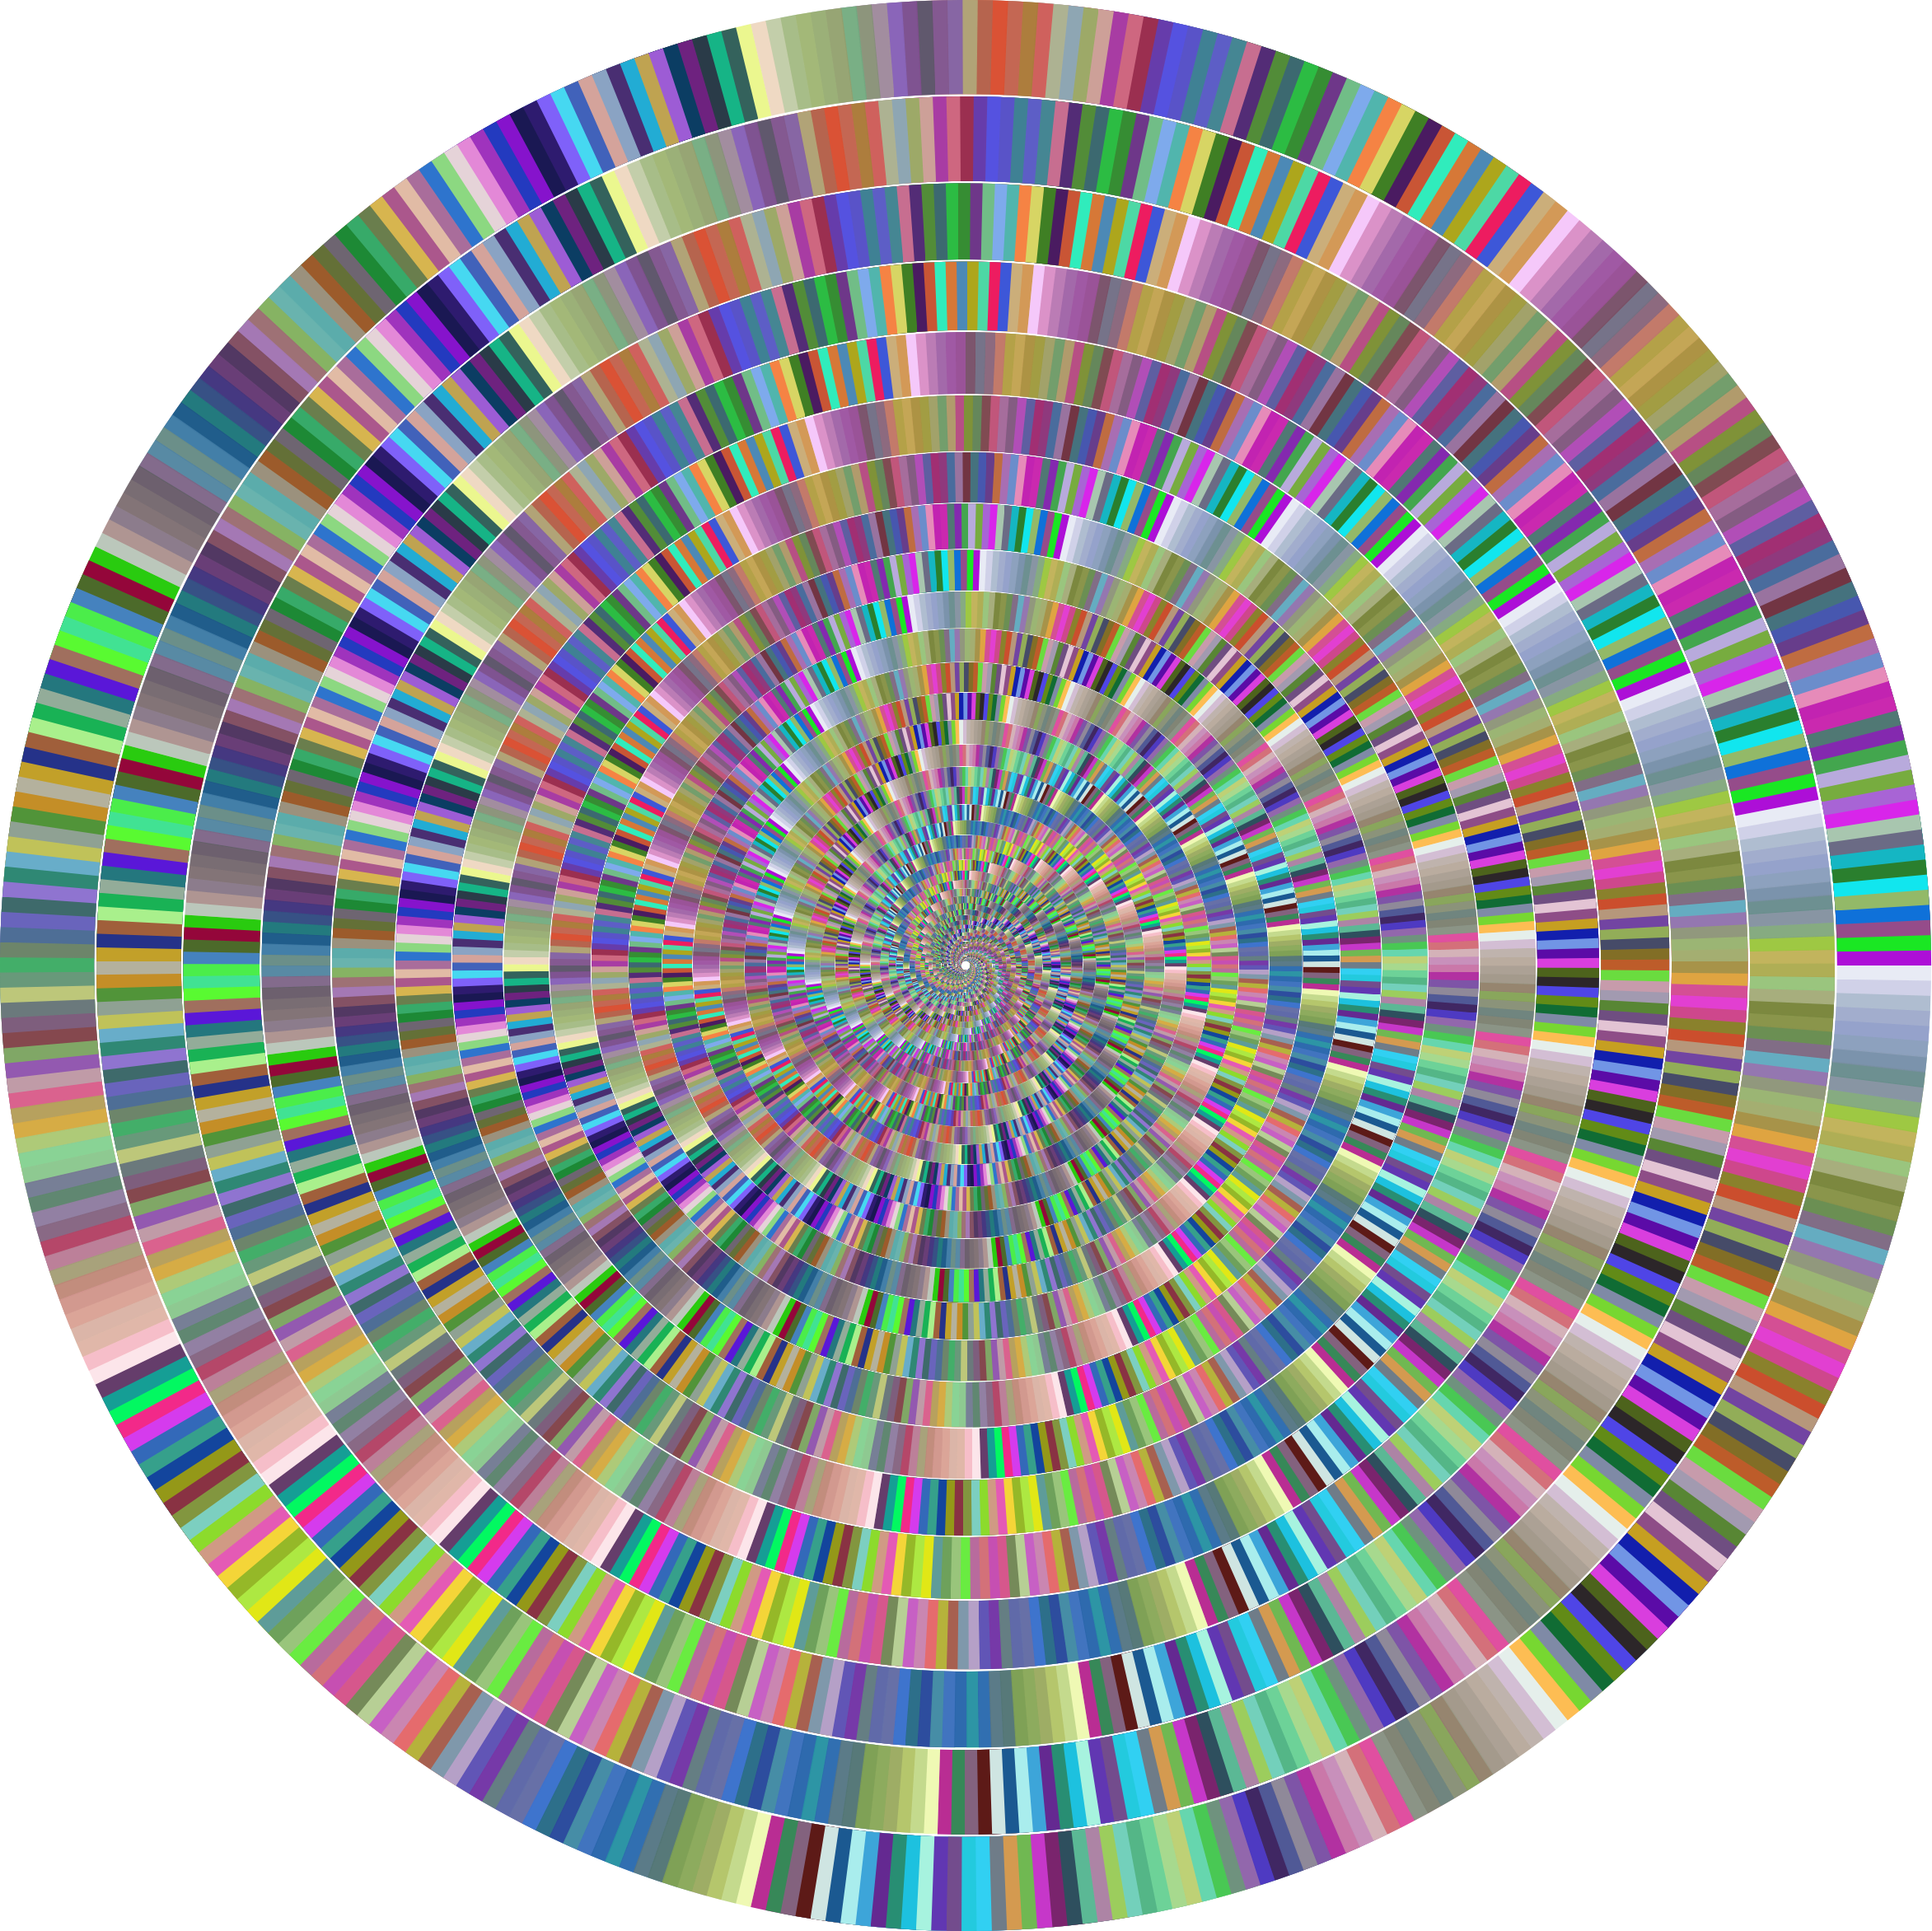 Prismatic Concentric Vortex by GDJ